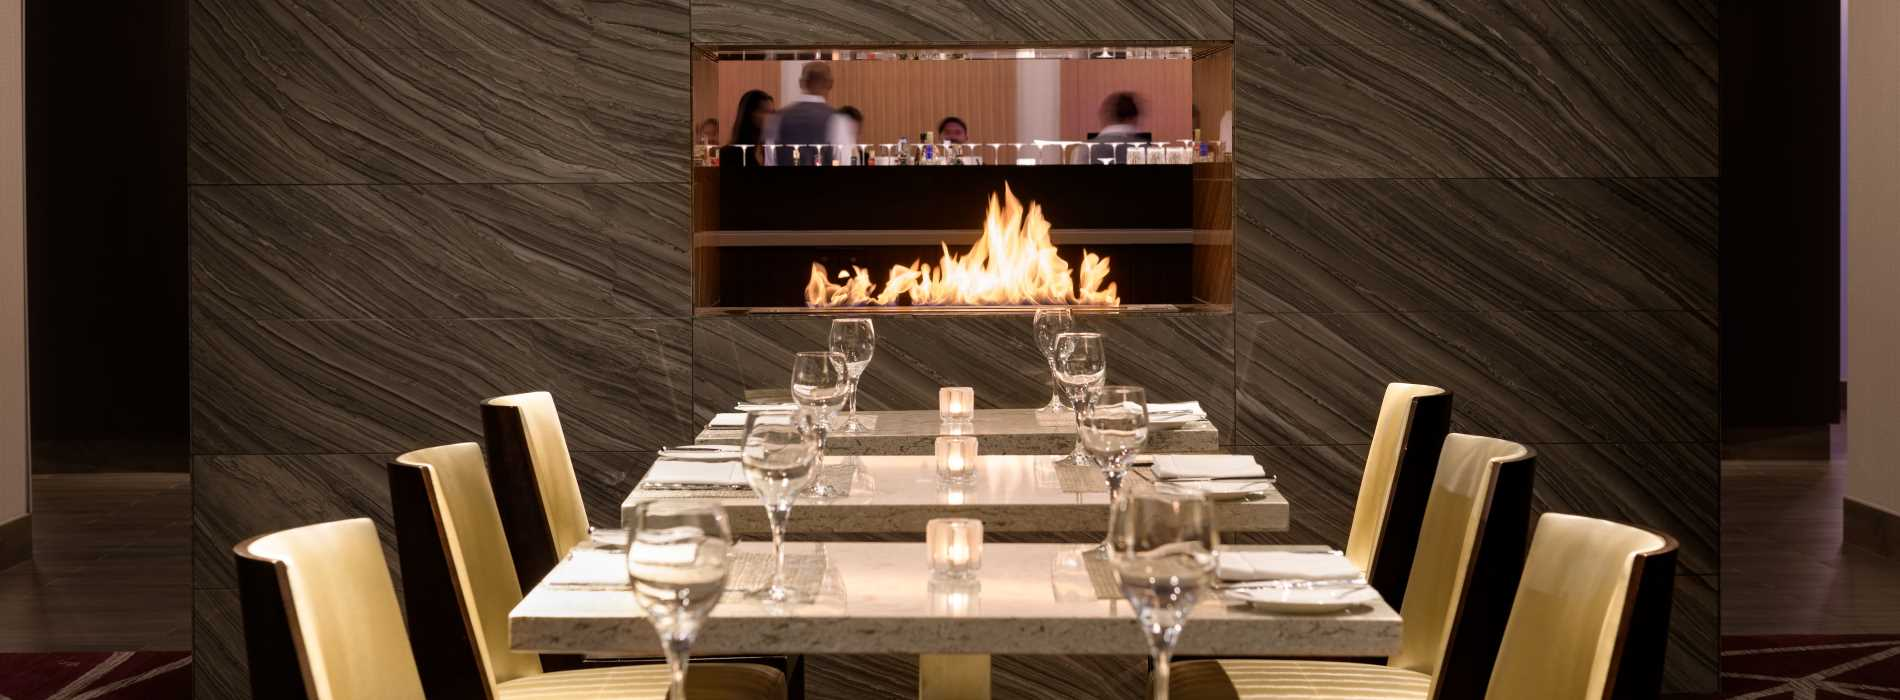 Evening Photo of Table and Fireplace